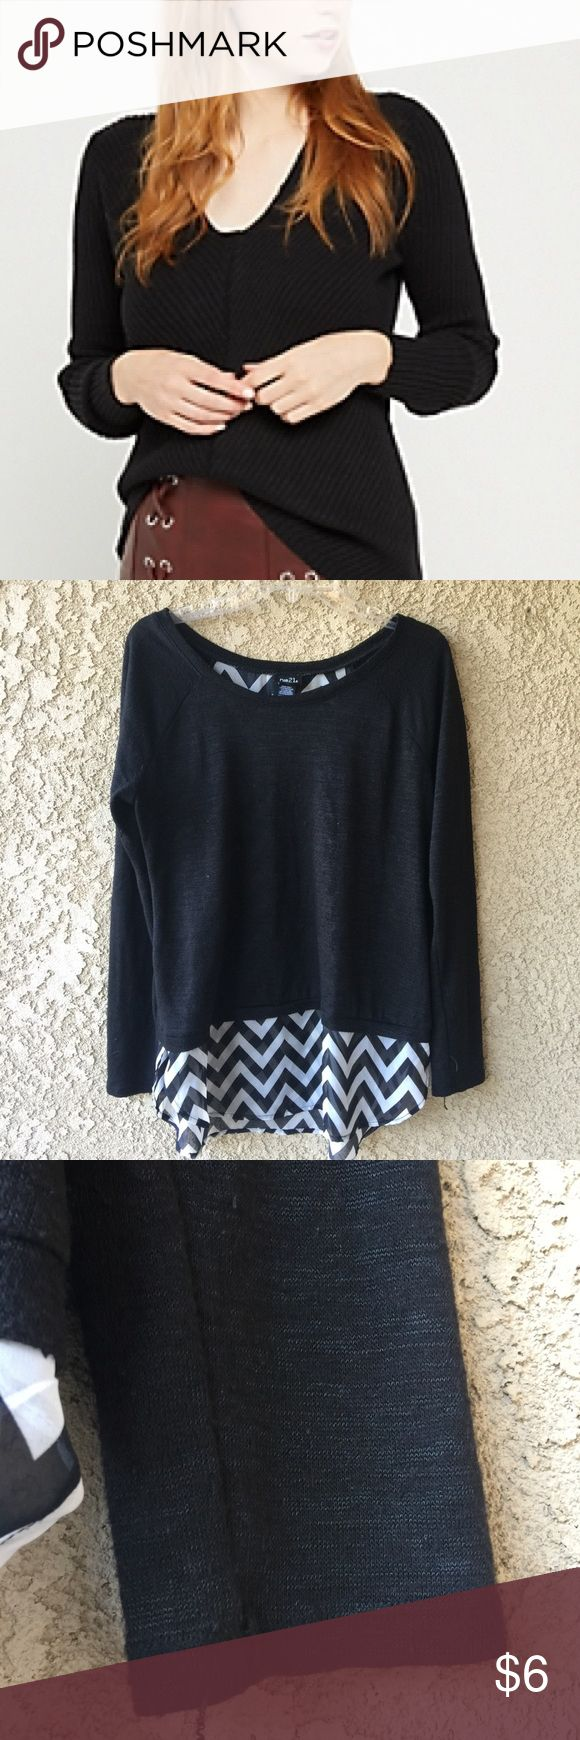 Black Chevron Top Rue 21 chevron top. There is pilling and run on the chevron back. No holes or stains.   ➖ Arm pit to arm pit is about 22 inches ➖ Sleeve length is about 25 1/2 inches  ◻️ Make an Offer or Bundle  ◼️ No Trades ❓ Questions? Just Ask!   ❌🚬 Smoke & ❌ 🐶🐱 Pet Free Home Rue 21 Tops Tees - Long Sleeve